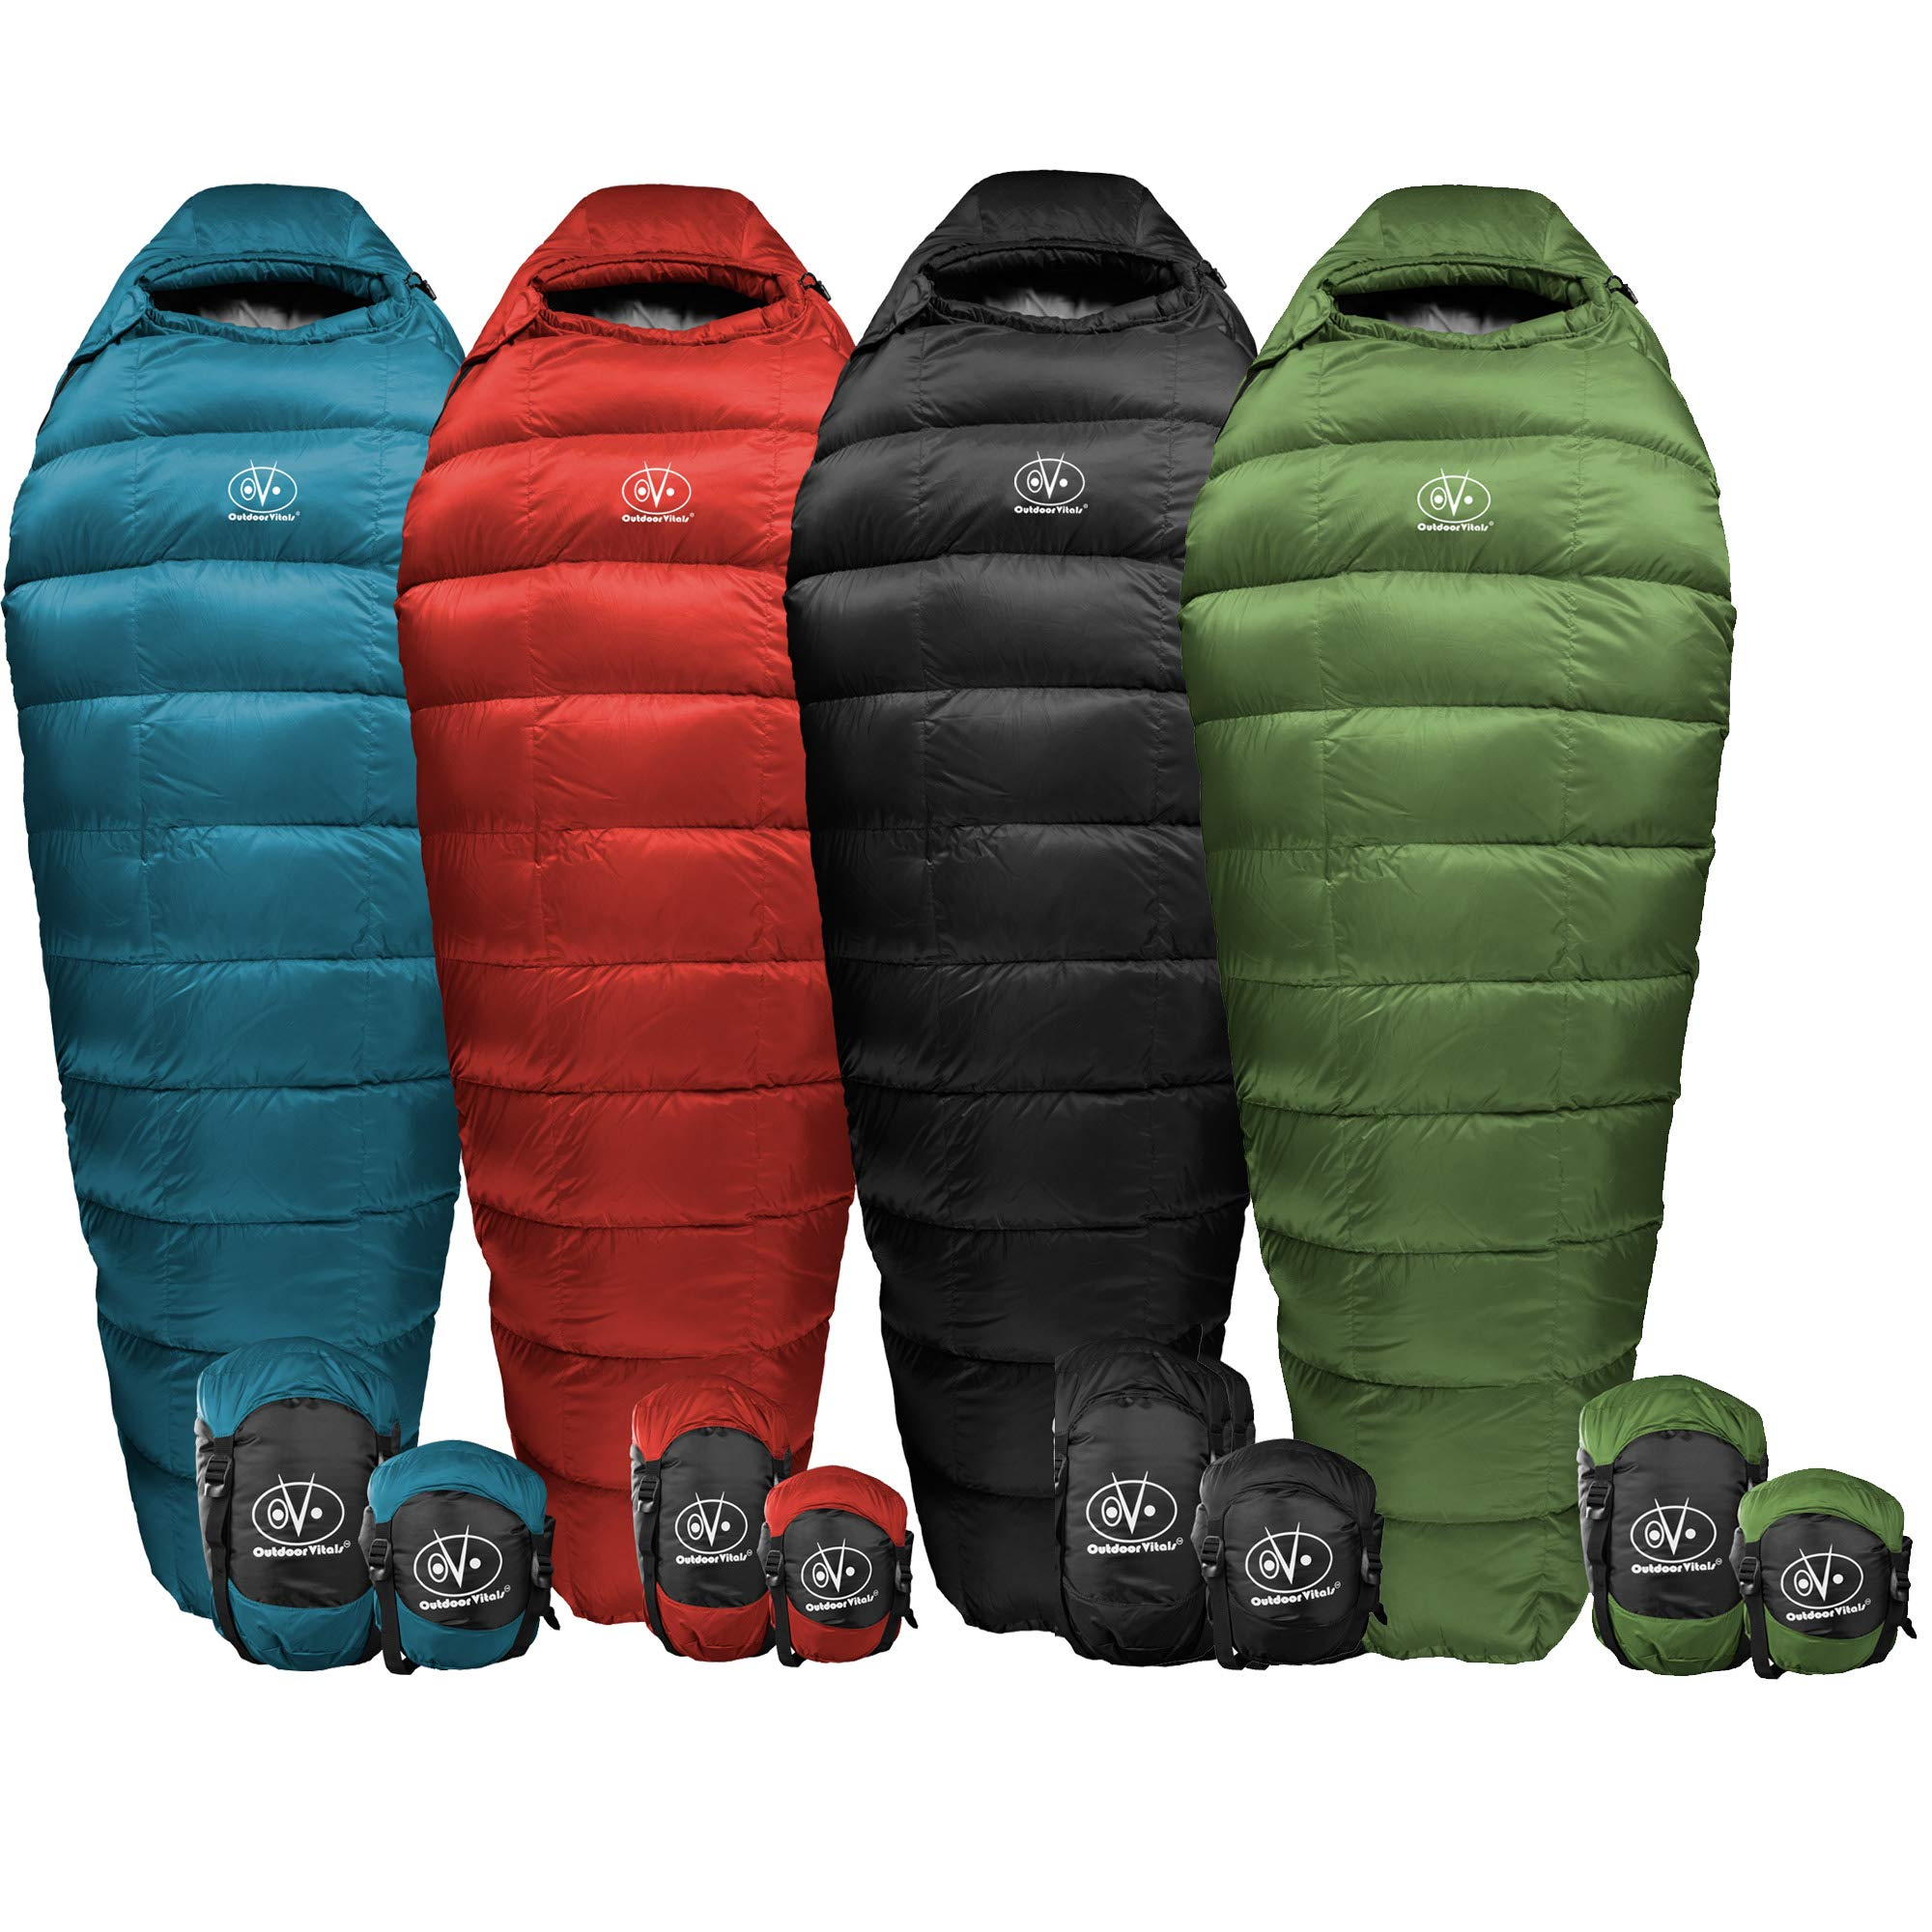 Outdoor Vitals Summit 0°F - 20°-30°F Down Sleeping Bag, 800 Fill Power, Mummy, Ultralight, Camping, Hiking by Outdoor Vitals